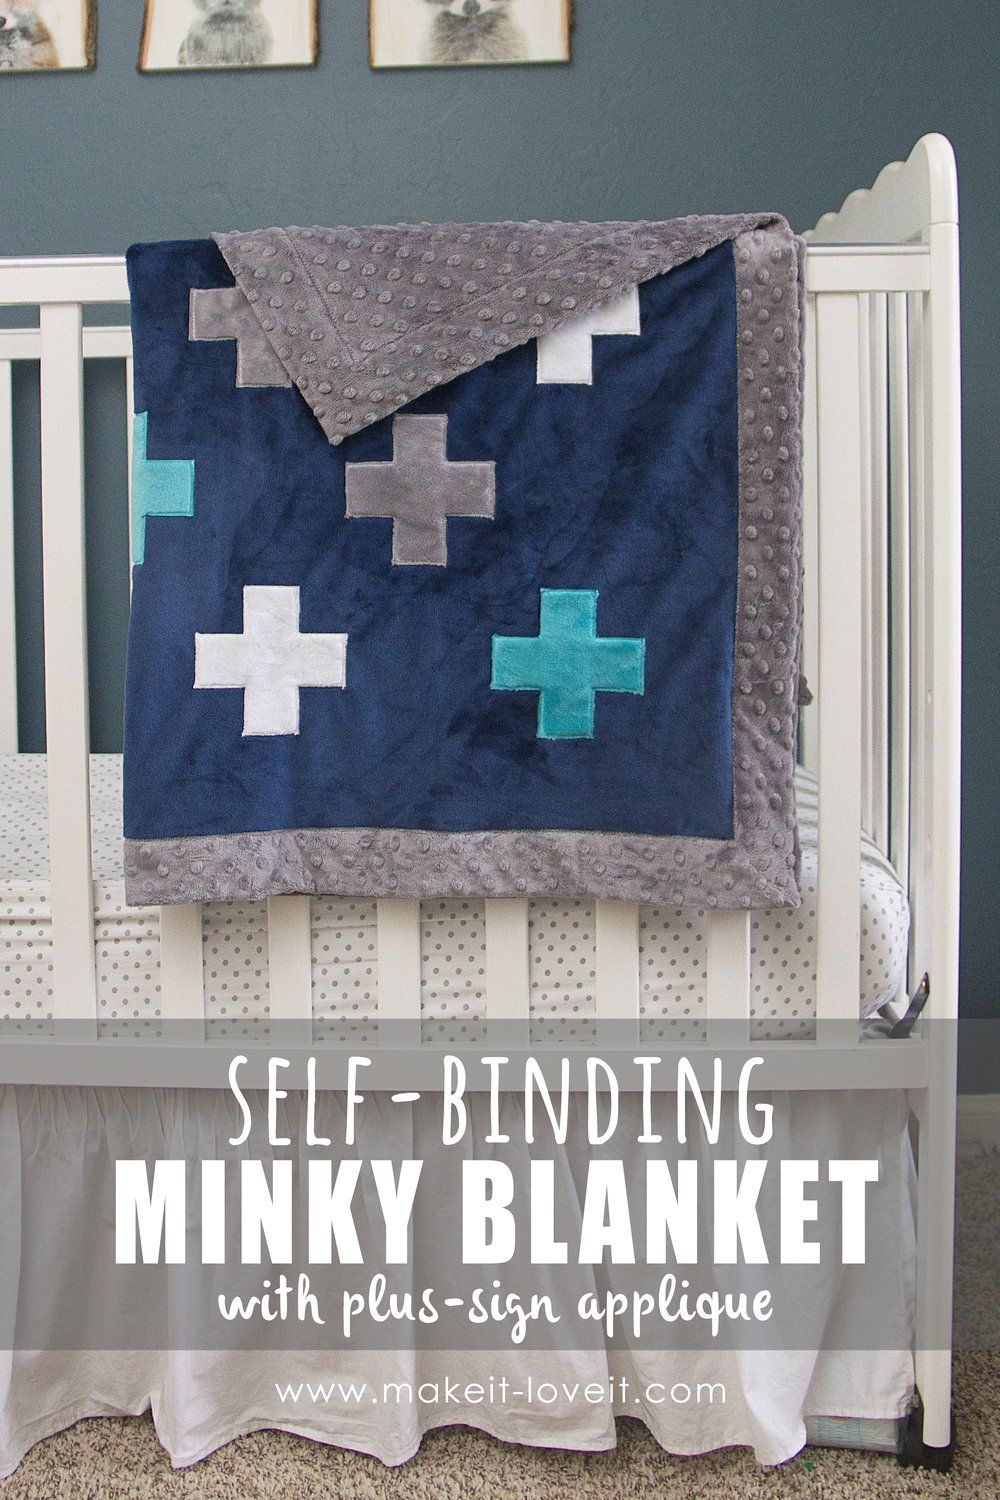 Selfbinding minky blanketuwith a plussign applique make it and